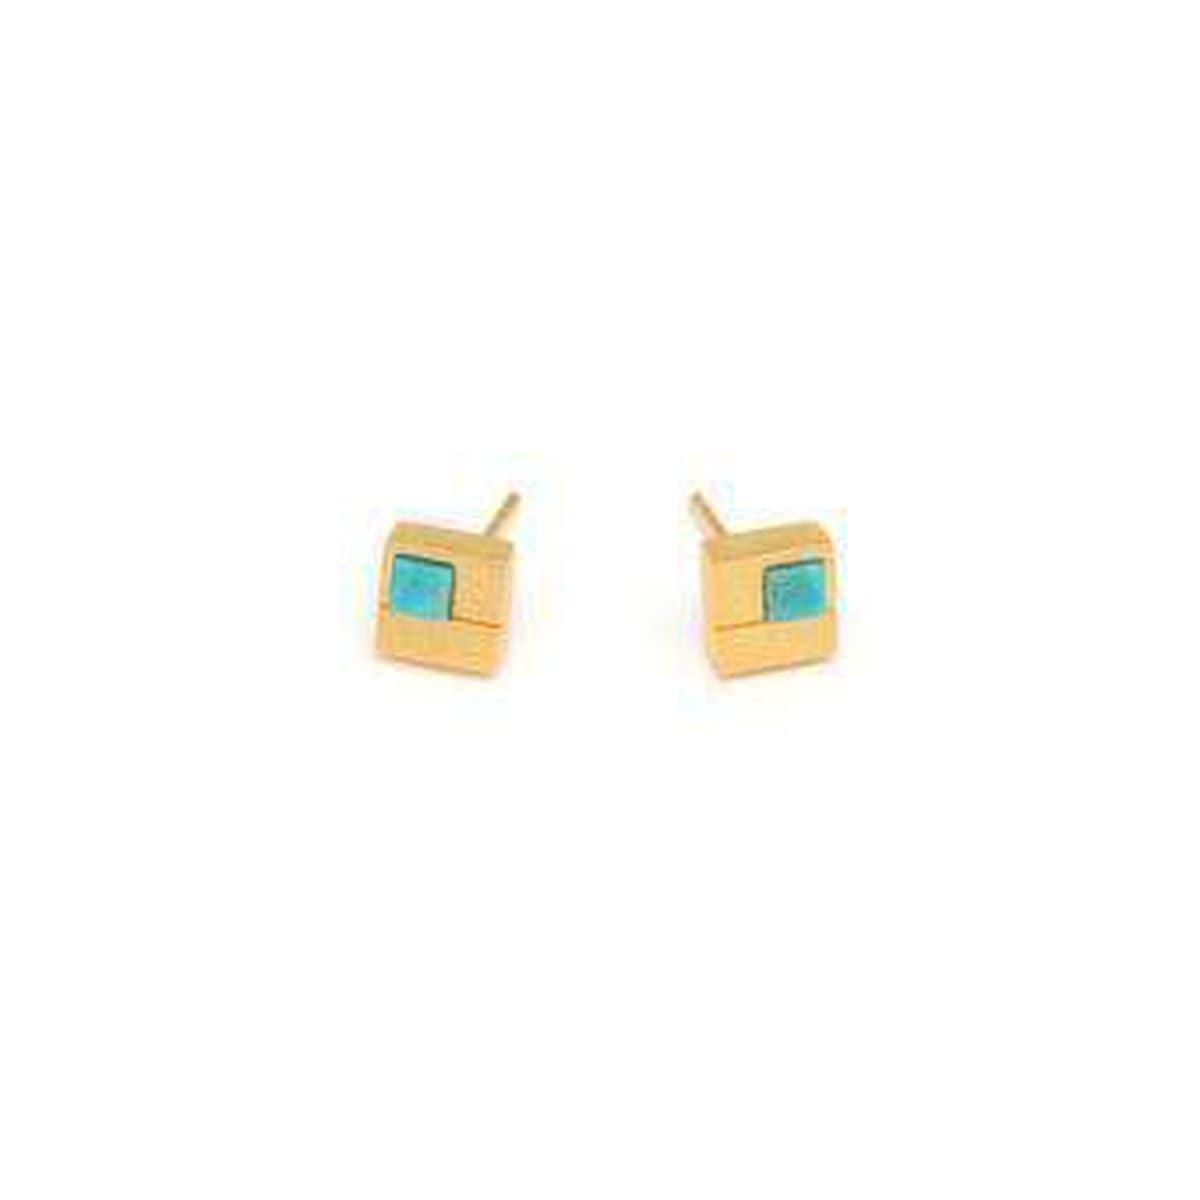 Cubio Turquoise Earrings - 19242256